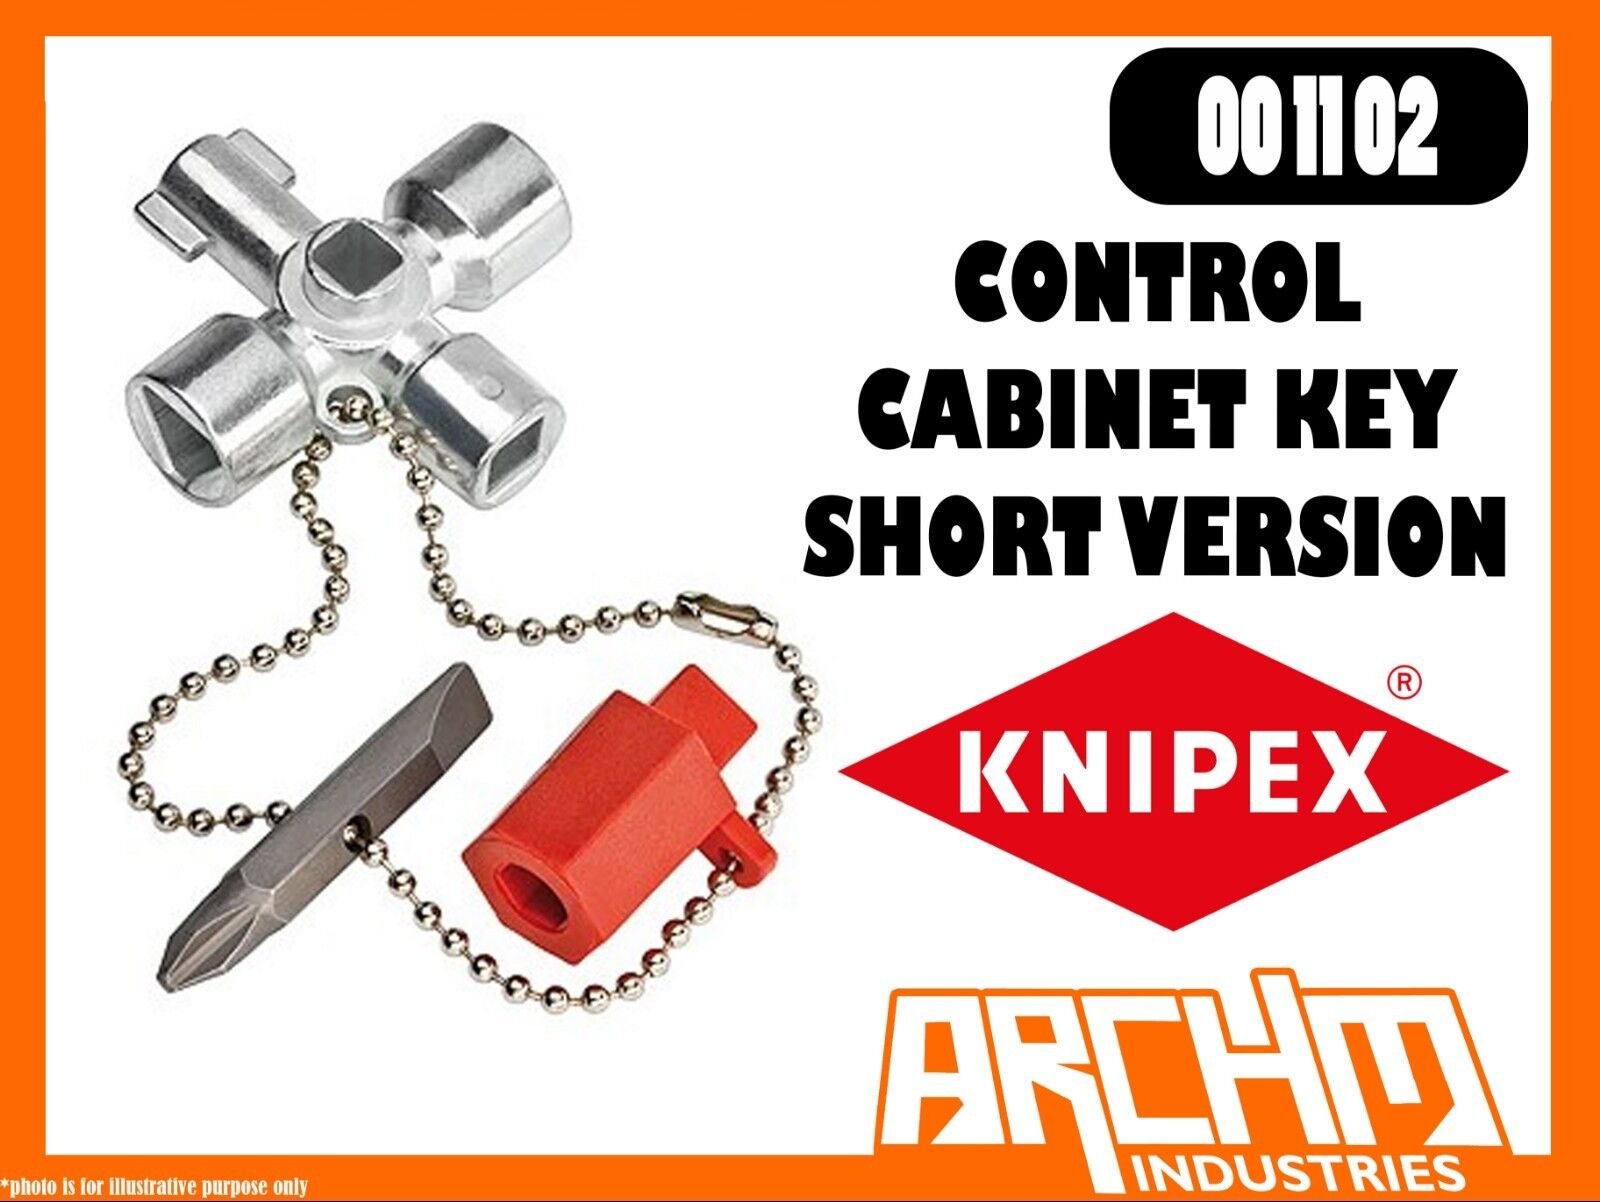 KNIPEX 001102 - CONTROL CABINET KEY - SHORT VERSION - 44MM - SHUT OFF SYSTEMS